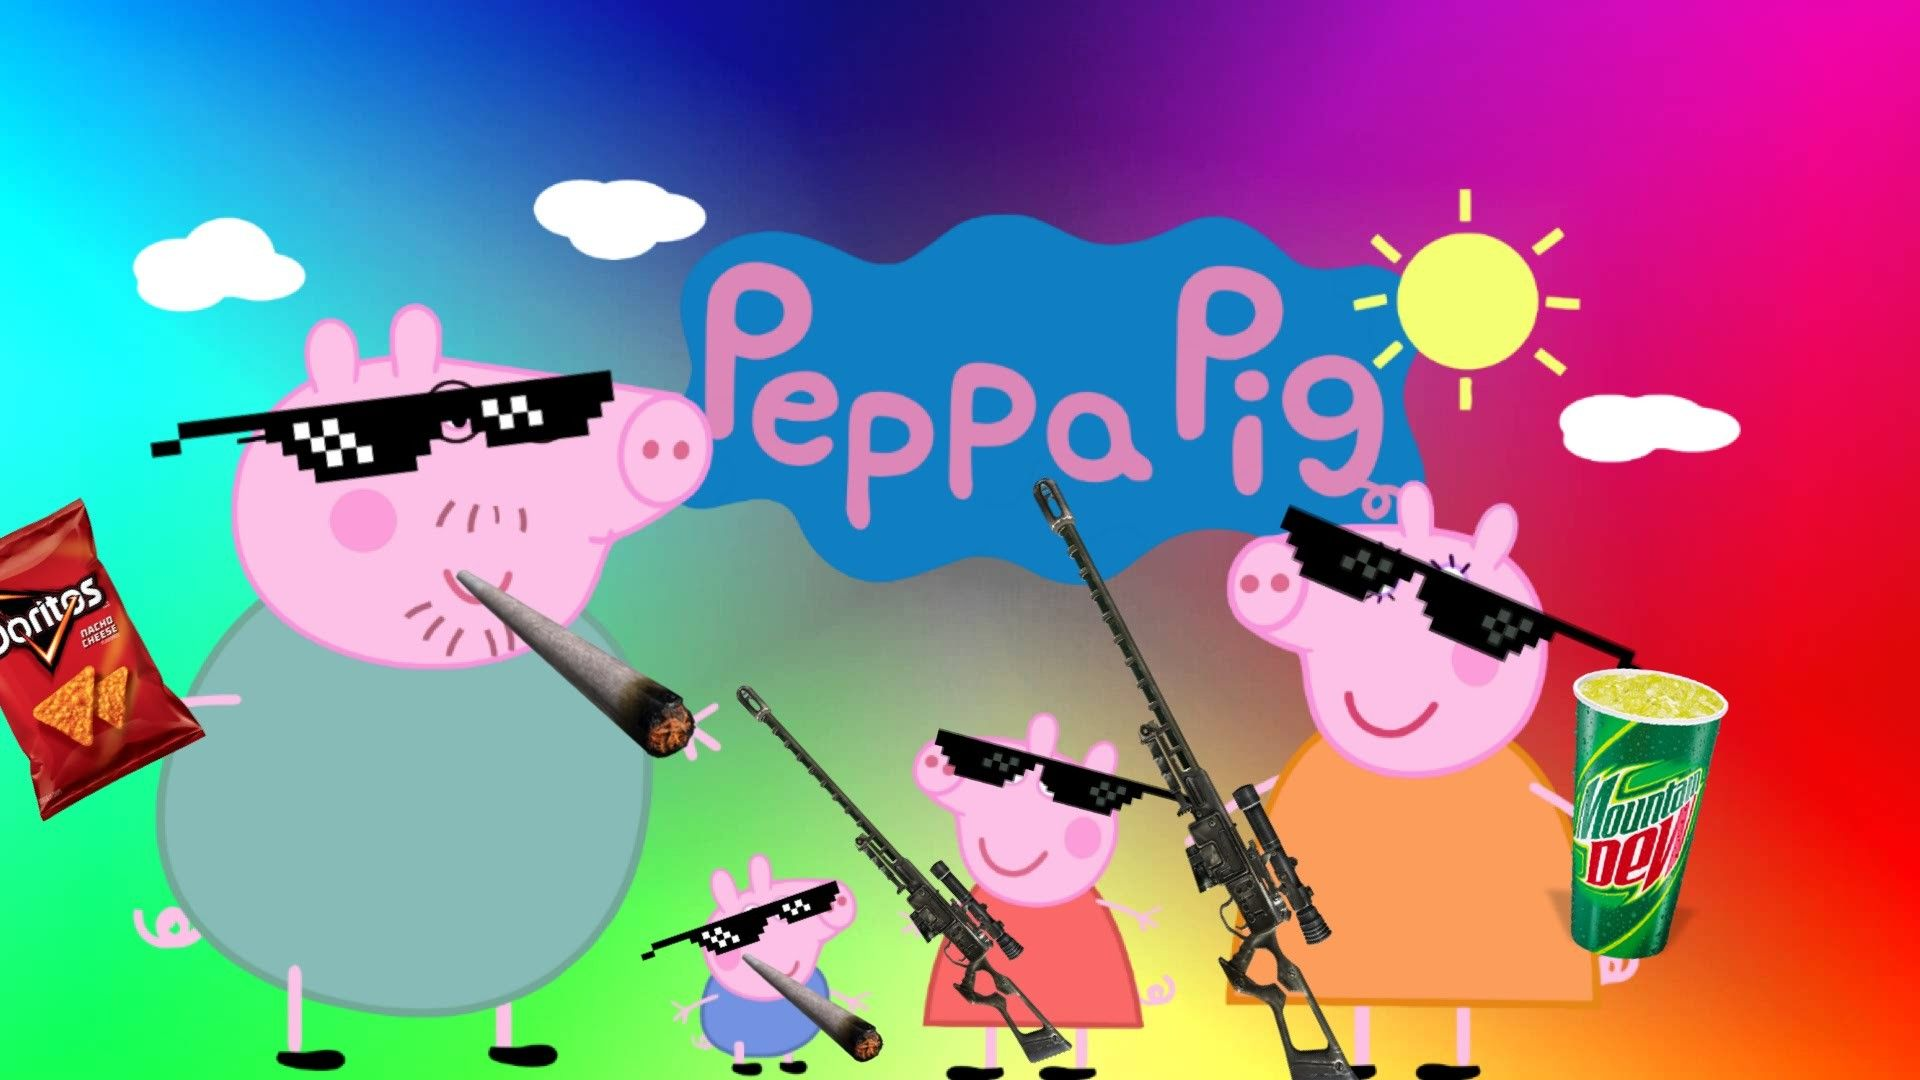 Peppa Pig Wallpapers Top Free Peppa Pig Backgrounds Wallpaperaccess